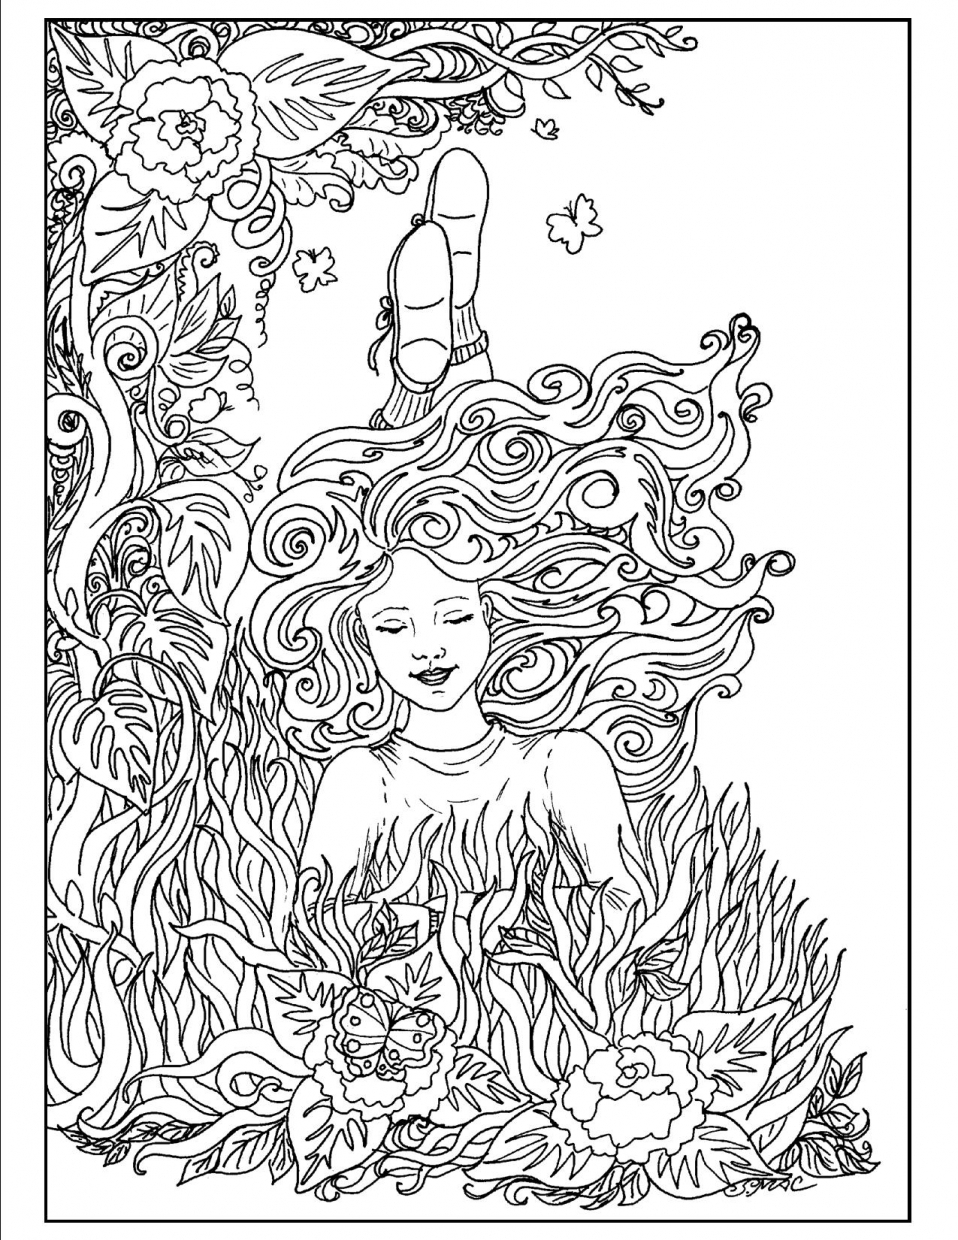 get this image of barbie coloring pages to print for kids uan64